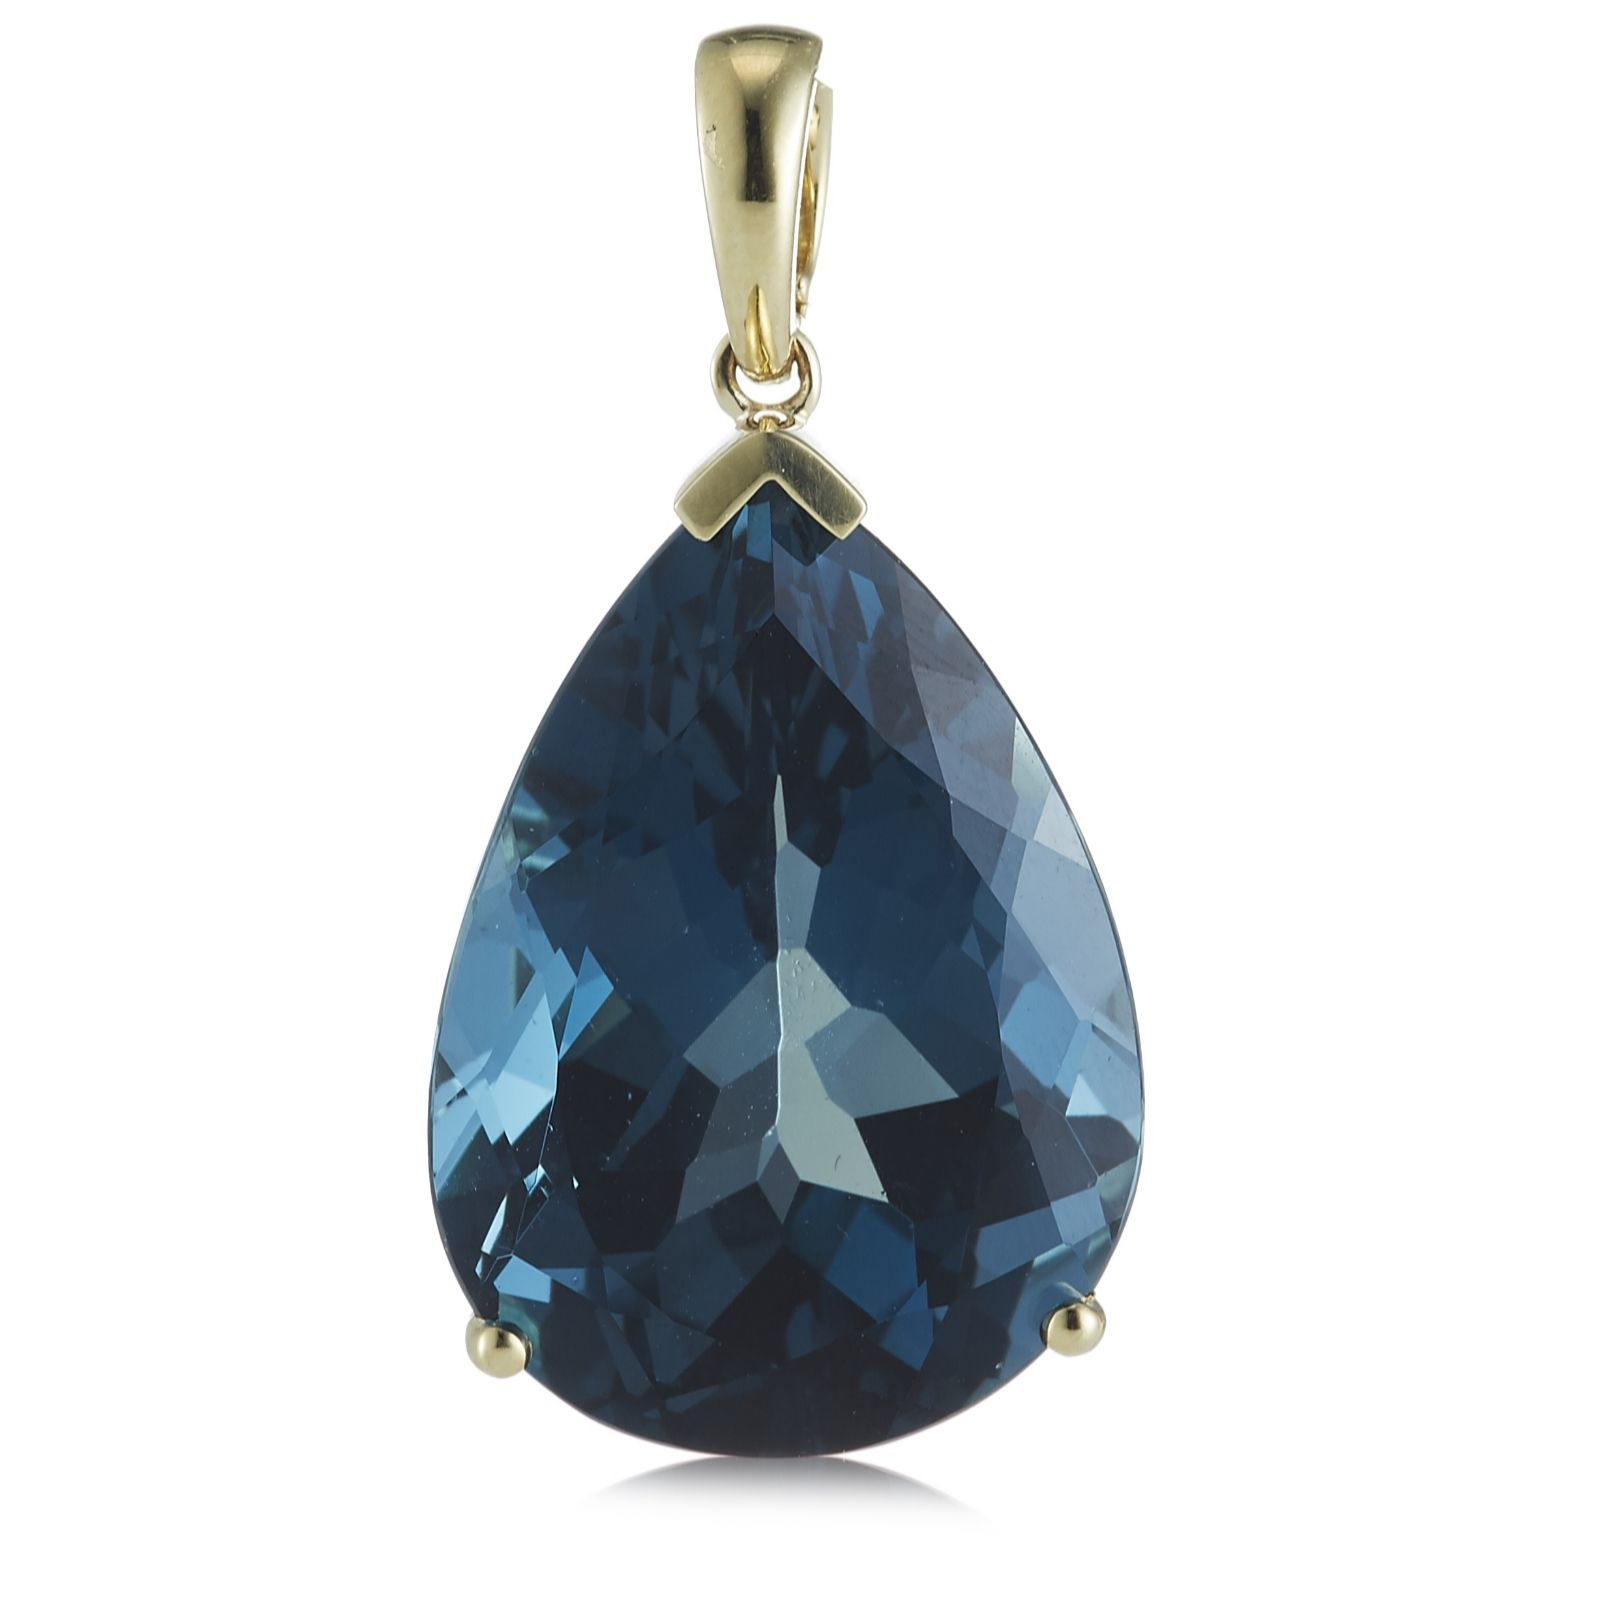 32ct Itinga London Blue Topaz Pear Pendant 9ct Gold